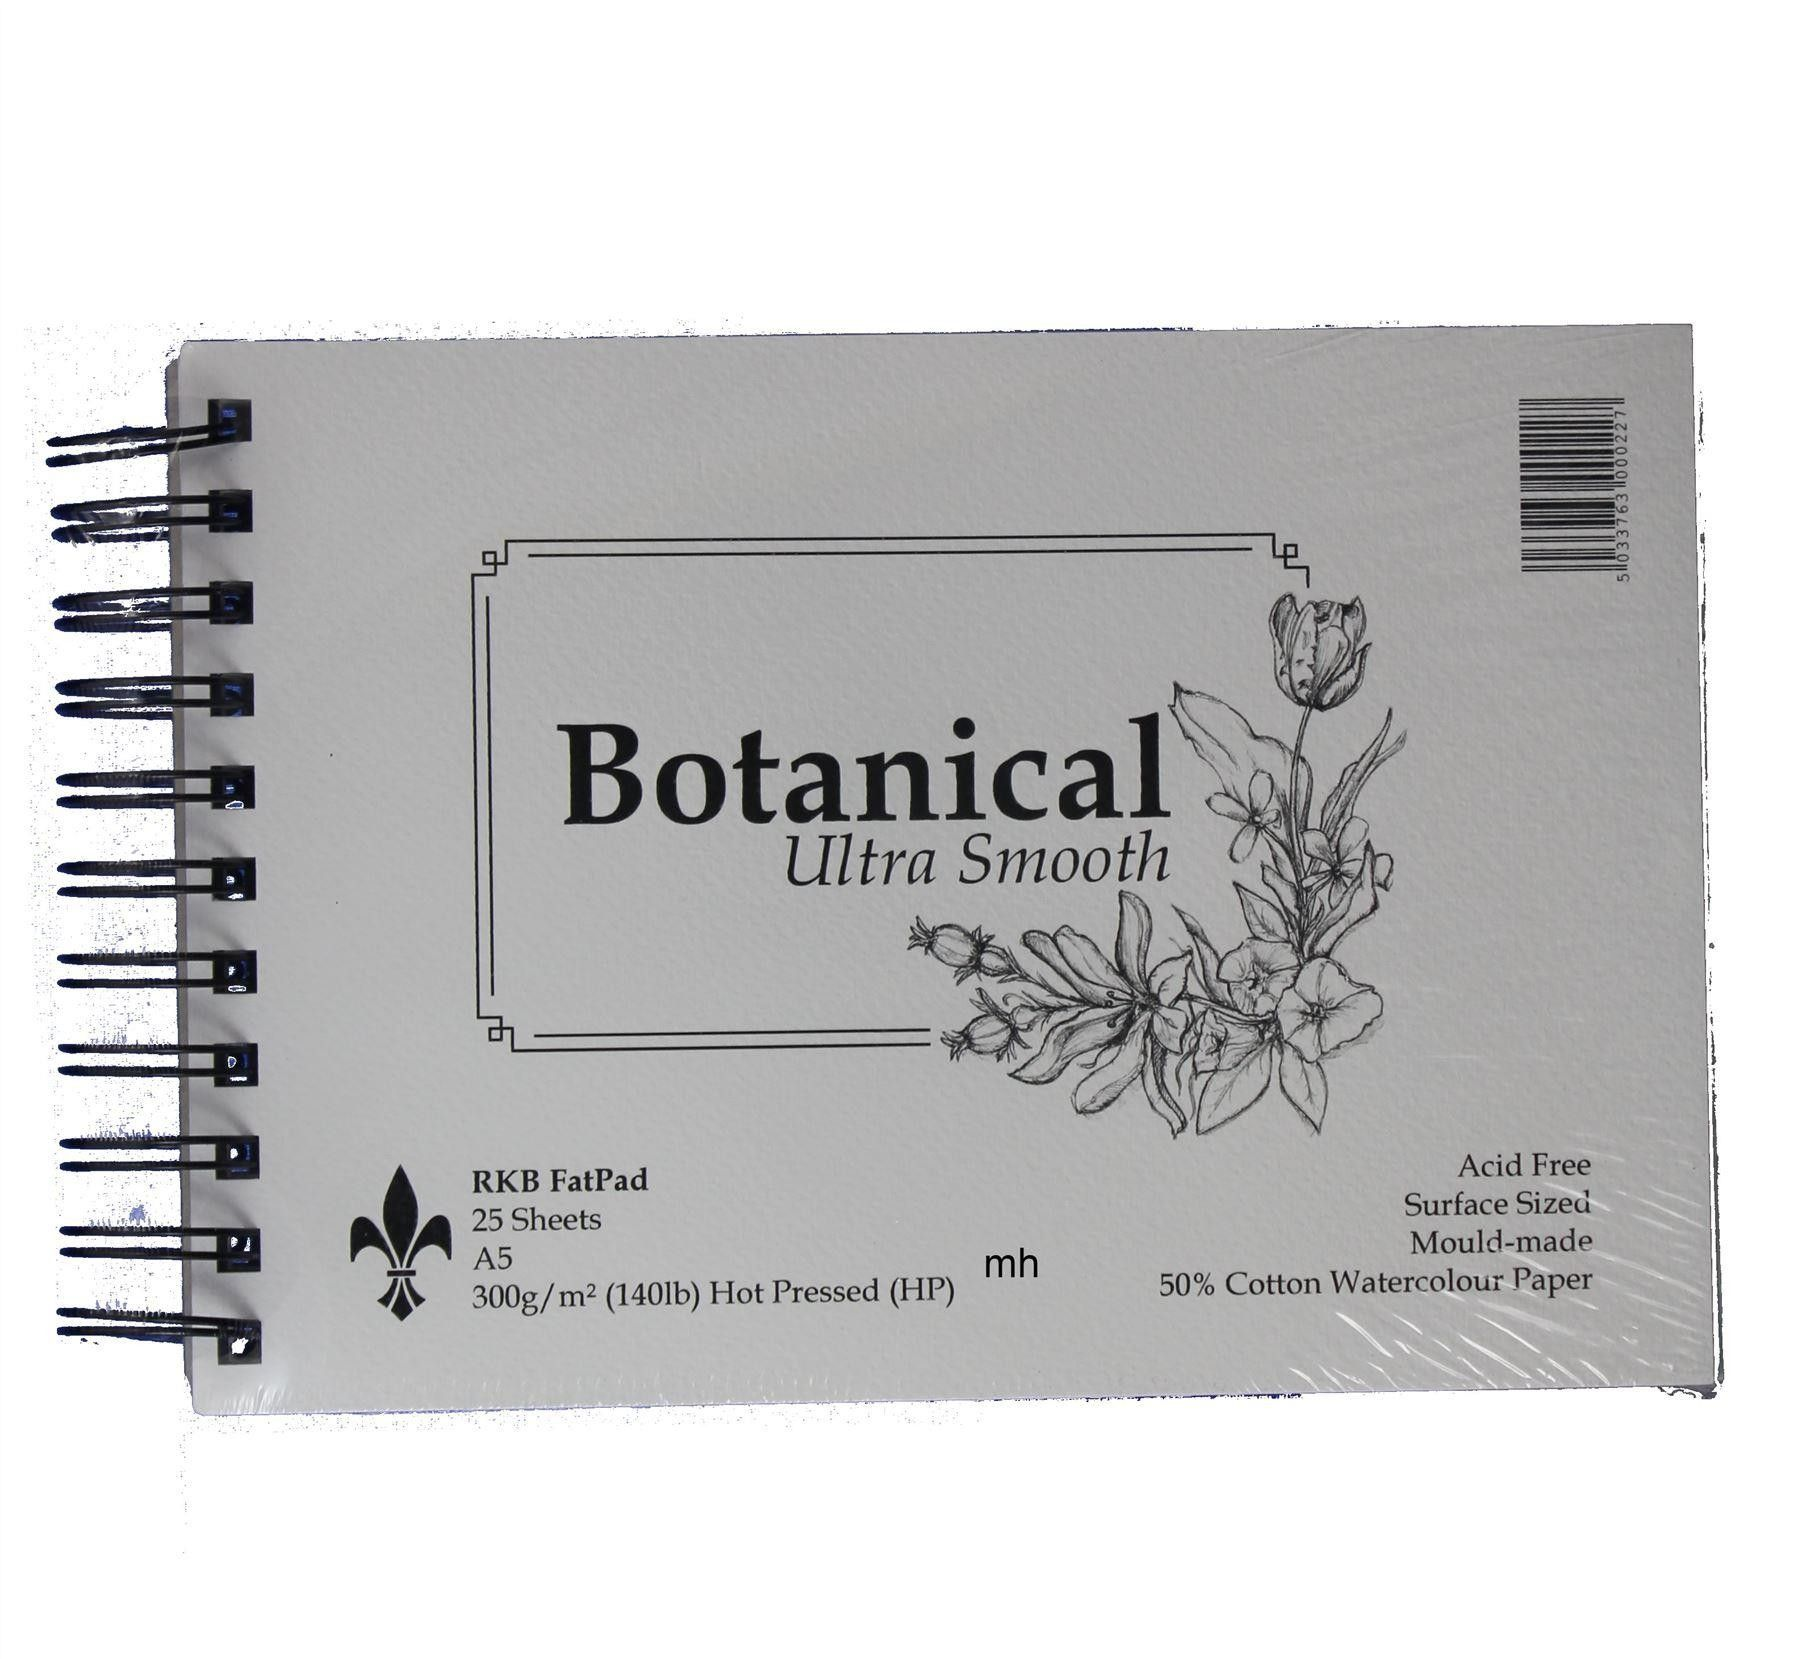 Rkb Botanical Ultra Smooth 50 Cotton Watercolour Paper Pads